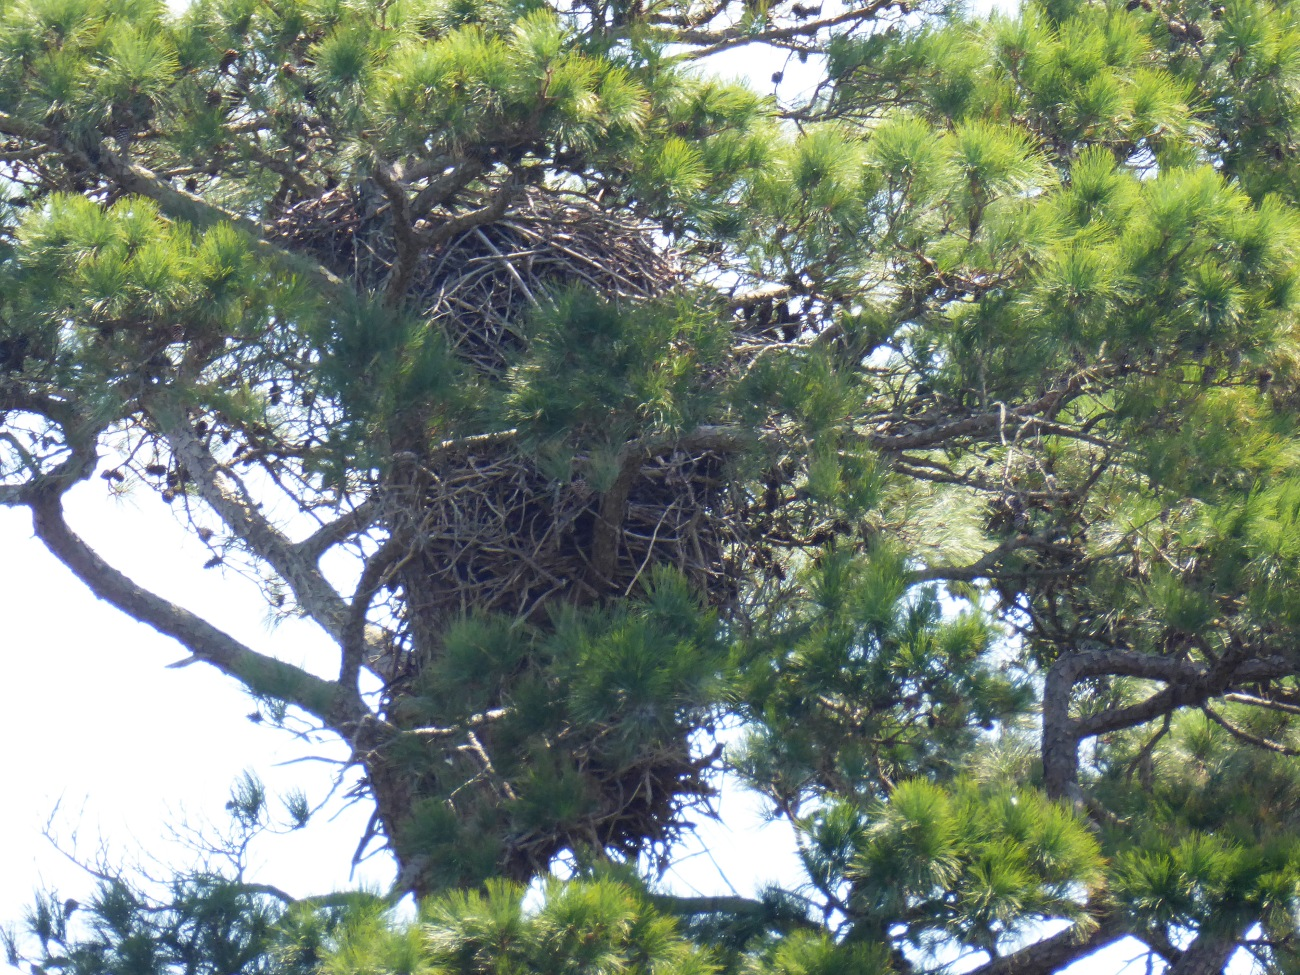 20170904_122913_Very Tall Eagle's Nest